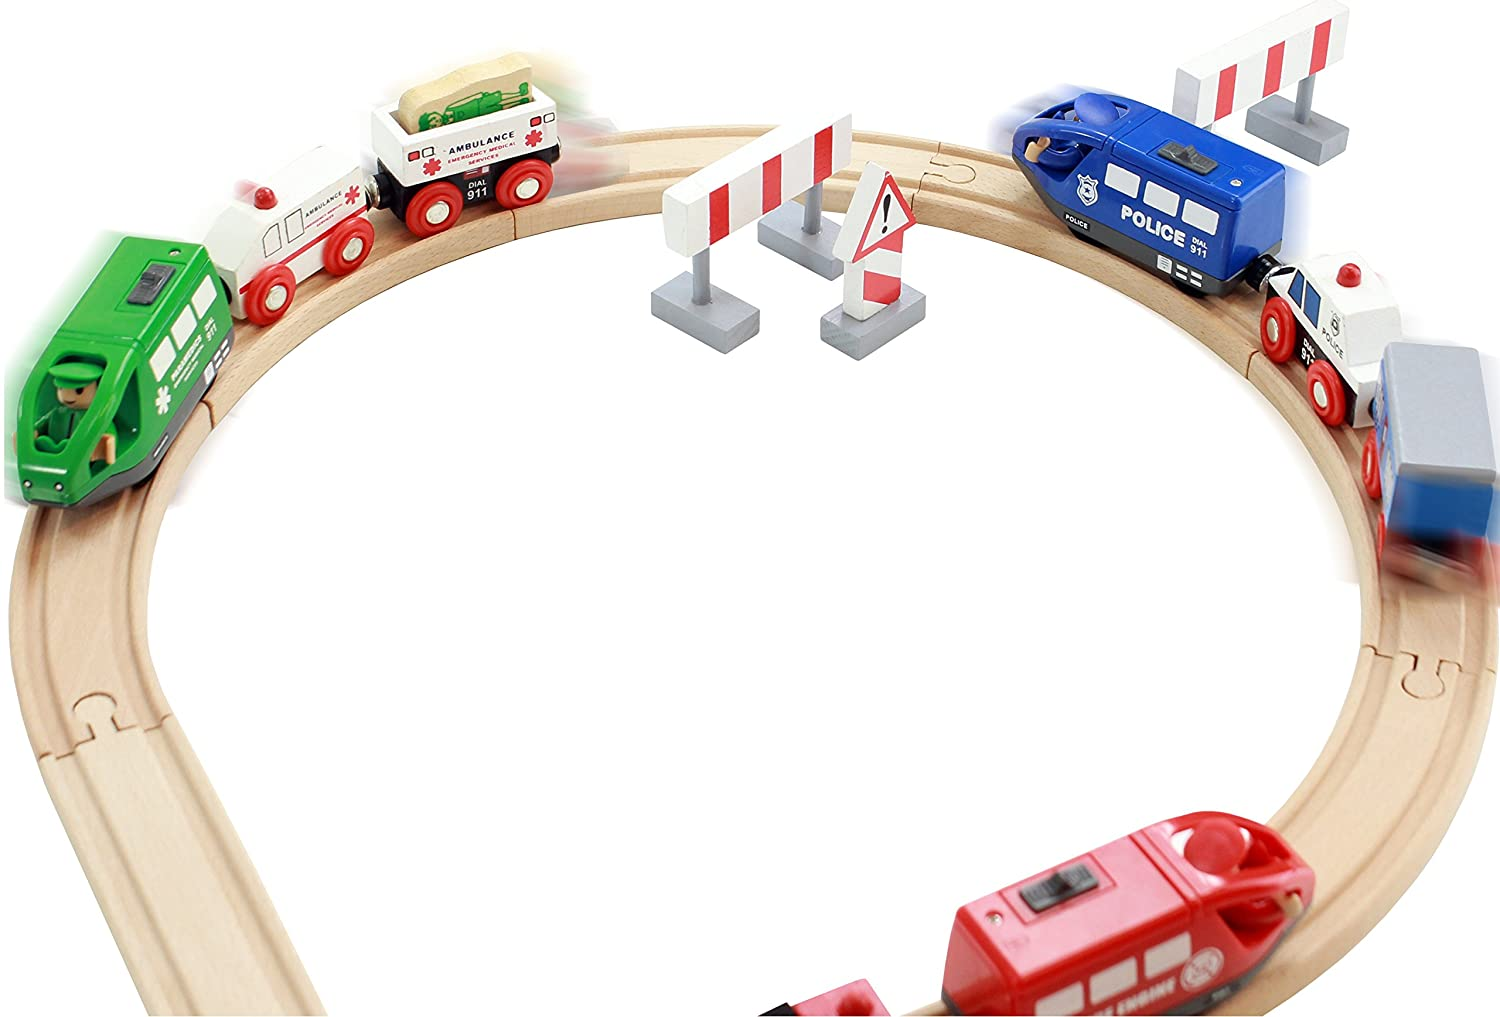 Includes 3 Motorized Engines and 6 Cars On Track USA Battery Operated Action Rescue Trains Compatible for Wooden Tracks from All Major Brands Batteries Not Included